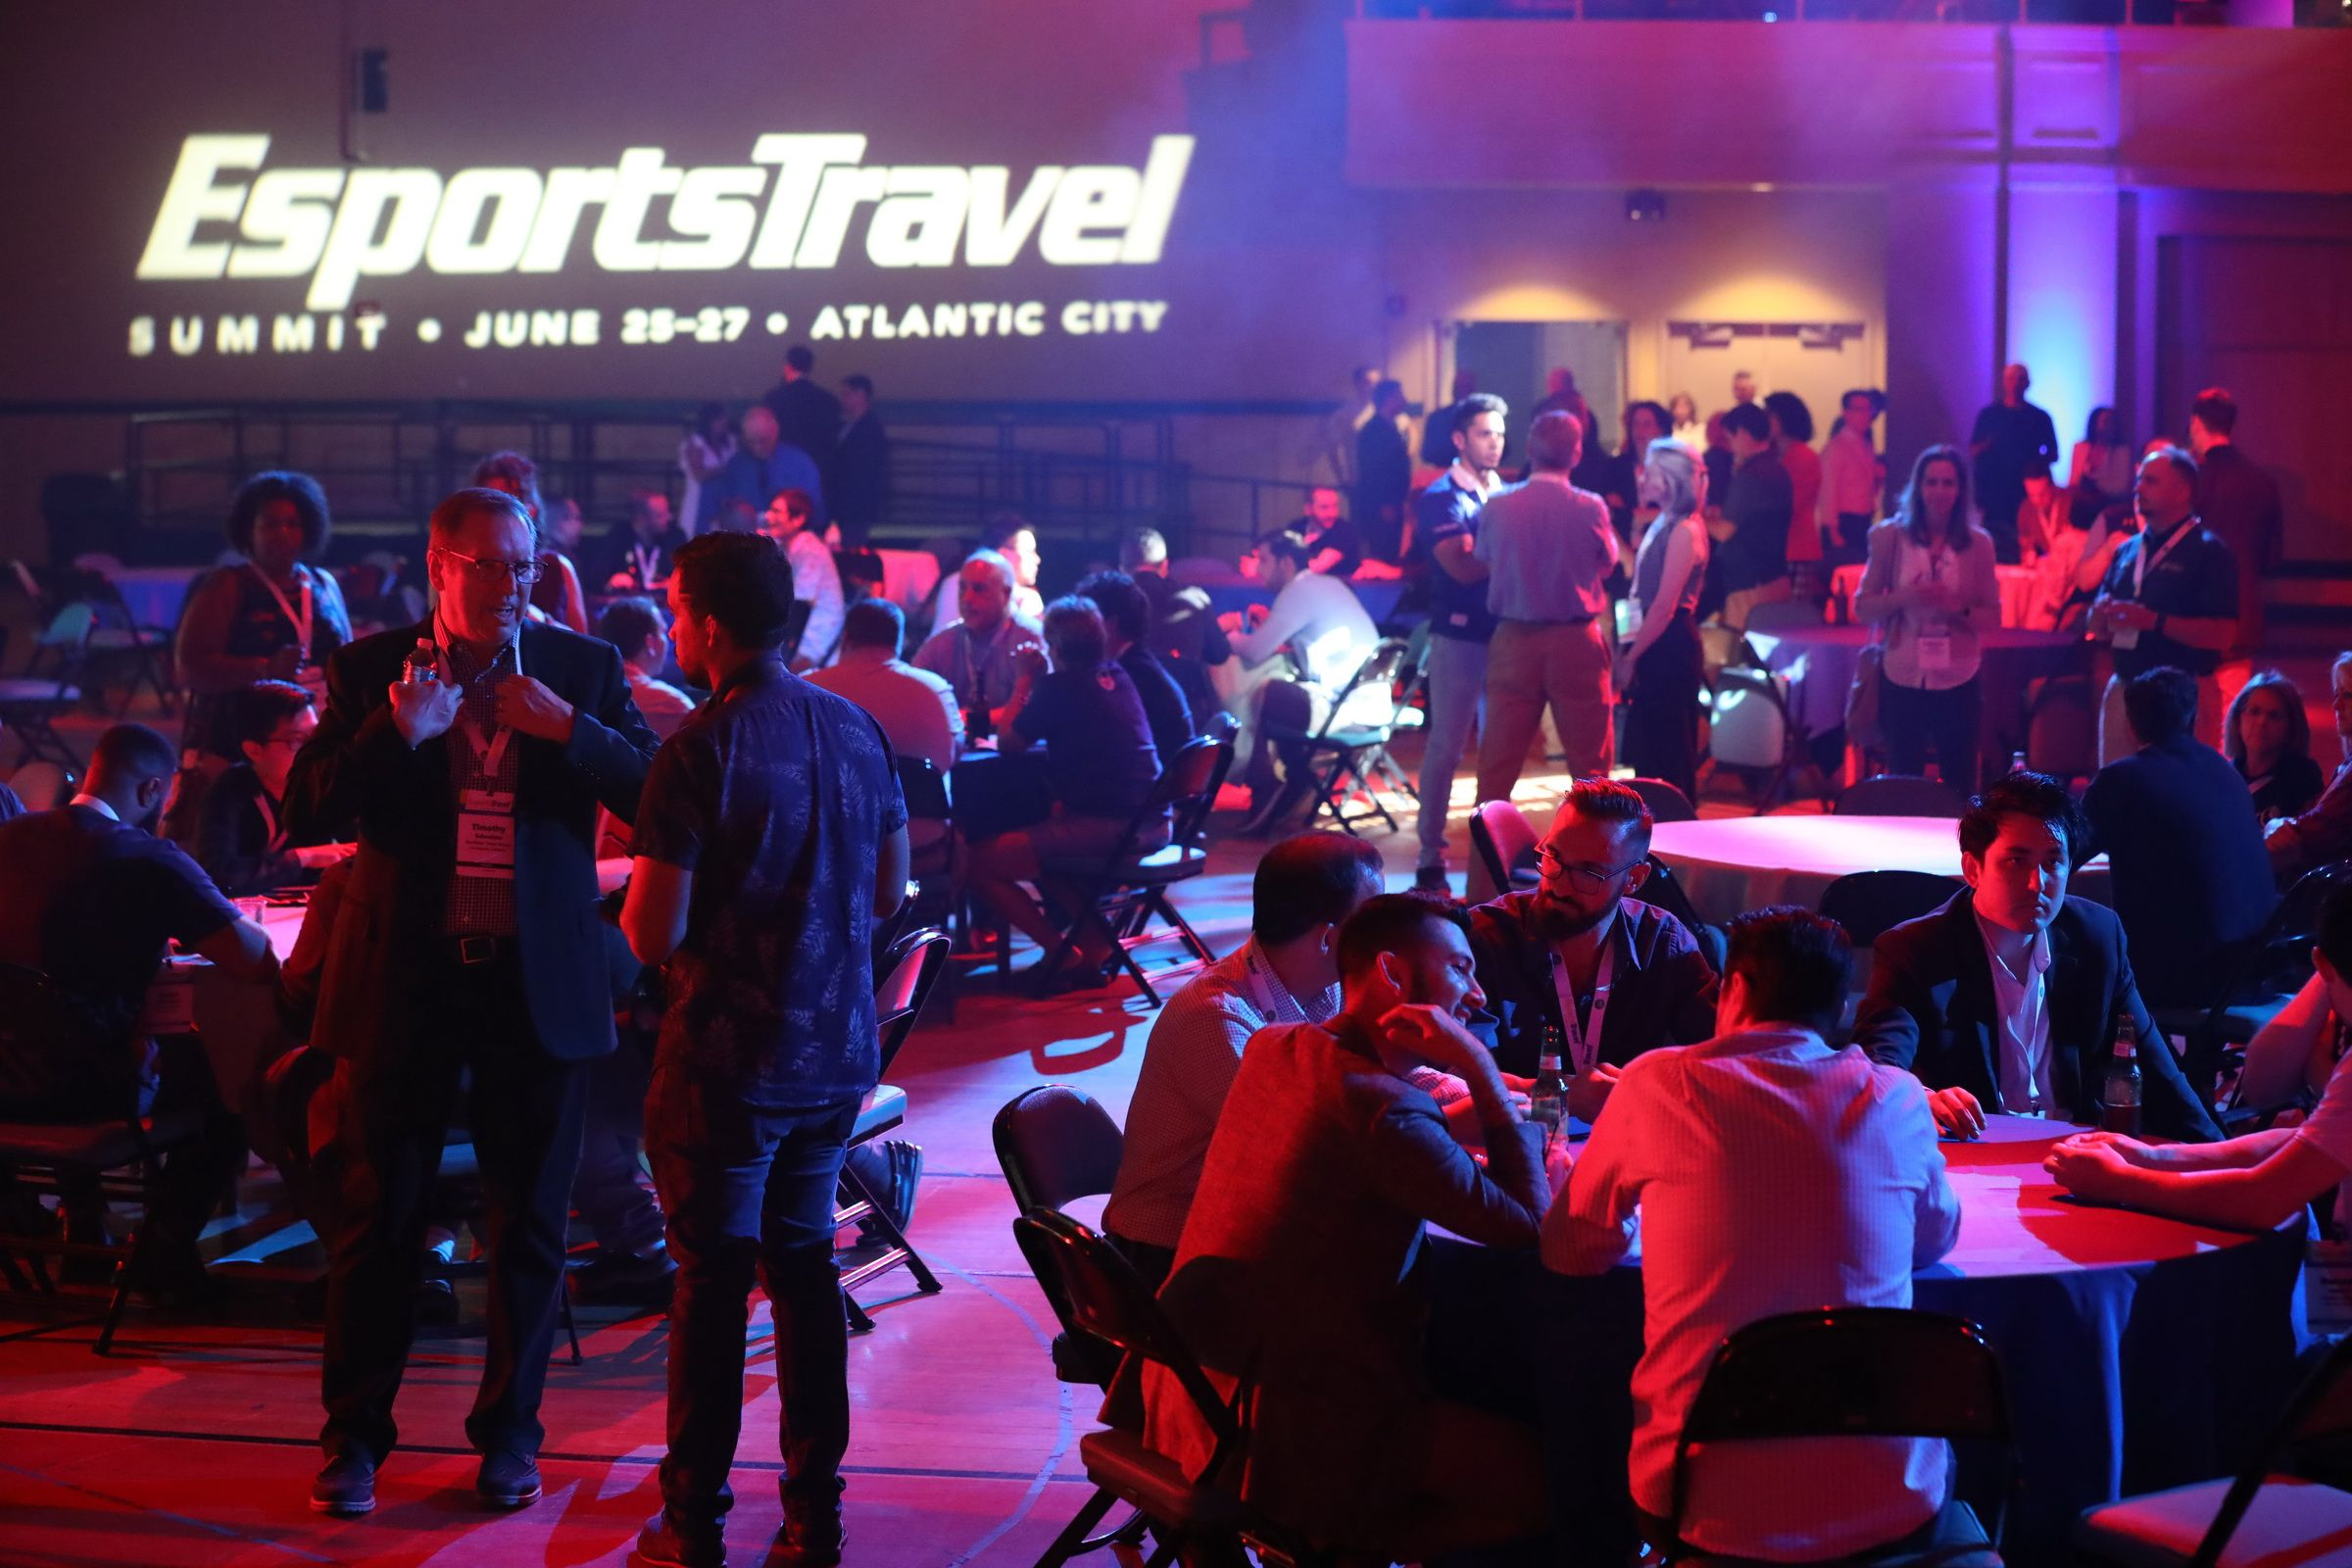 THE ESPORTSTRAVEL SUMMIT IS SPECIFICALLY DESIGNED FOR: